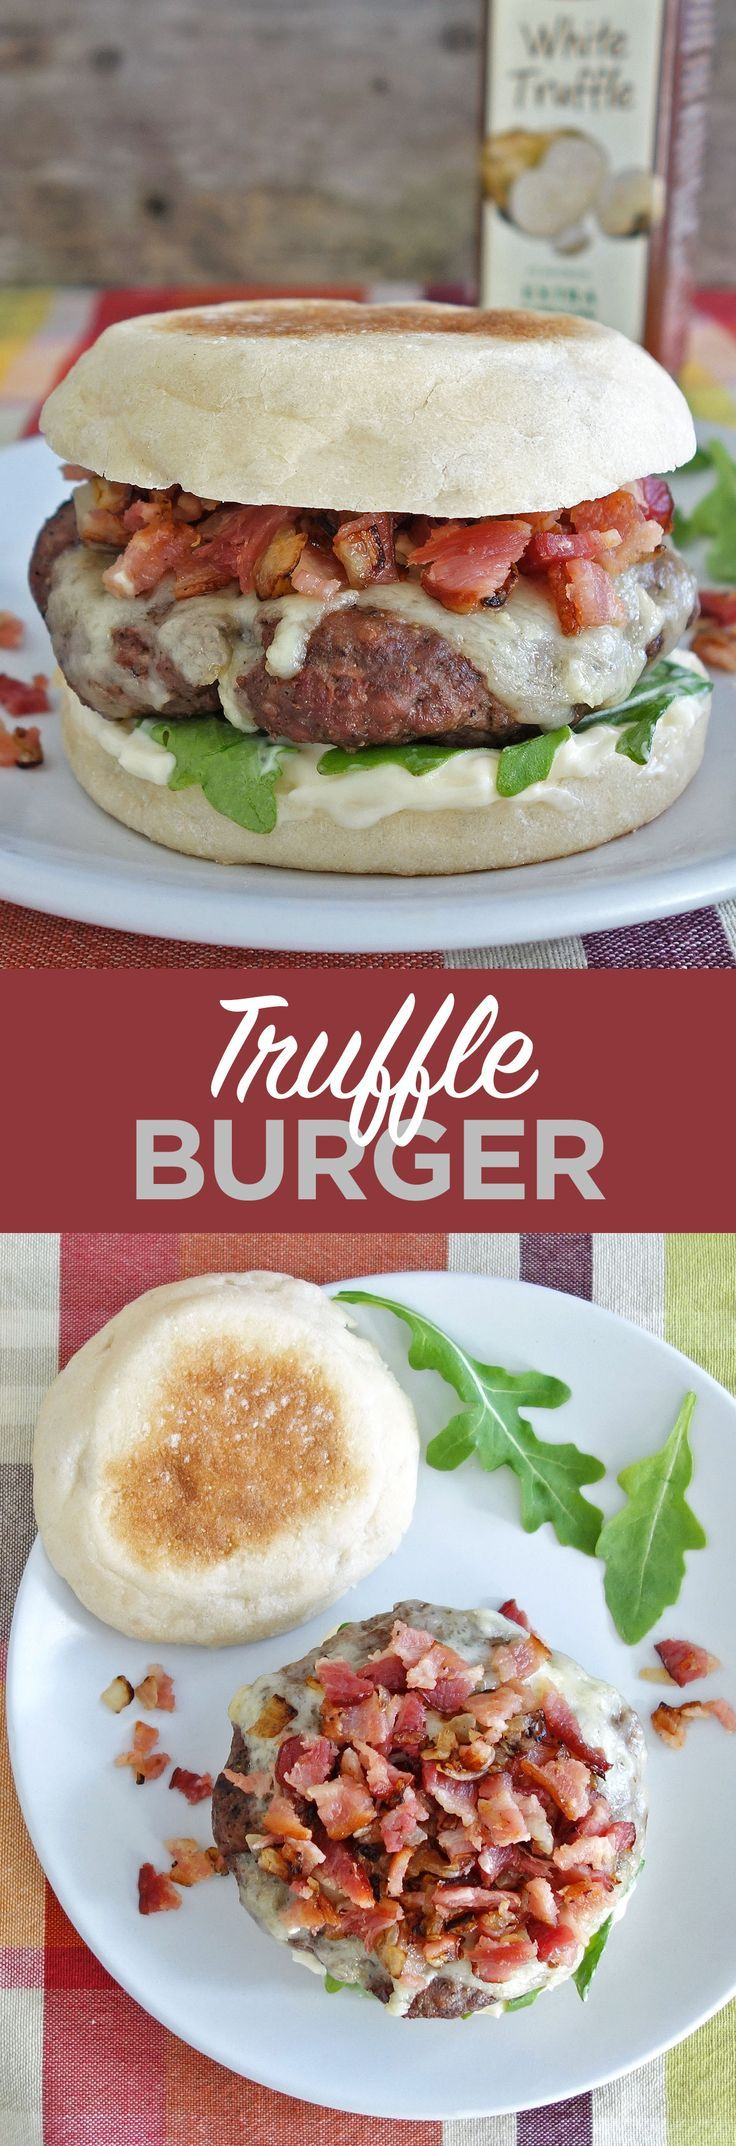 The delicious truffle burger is topped with truffle aioli, brie cheese, and diced bacon & onion. Yum! http://www.burgerartist.com/recipe/truffle-burger/